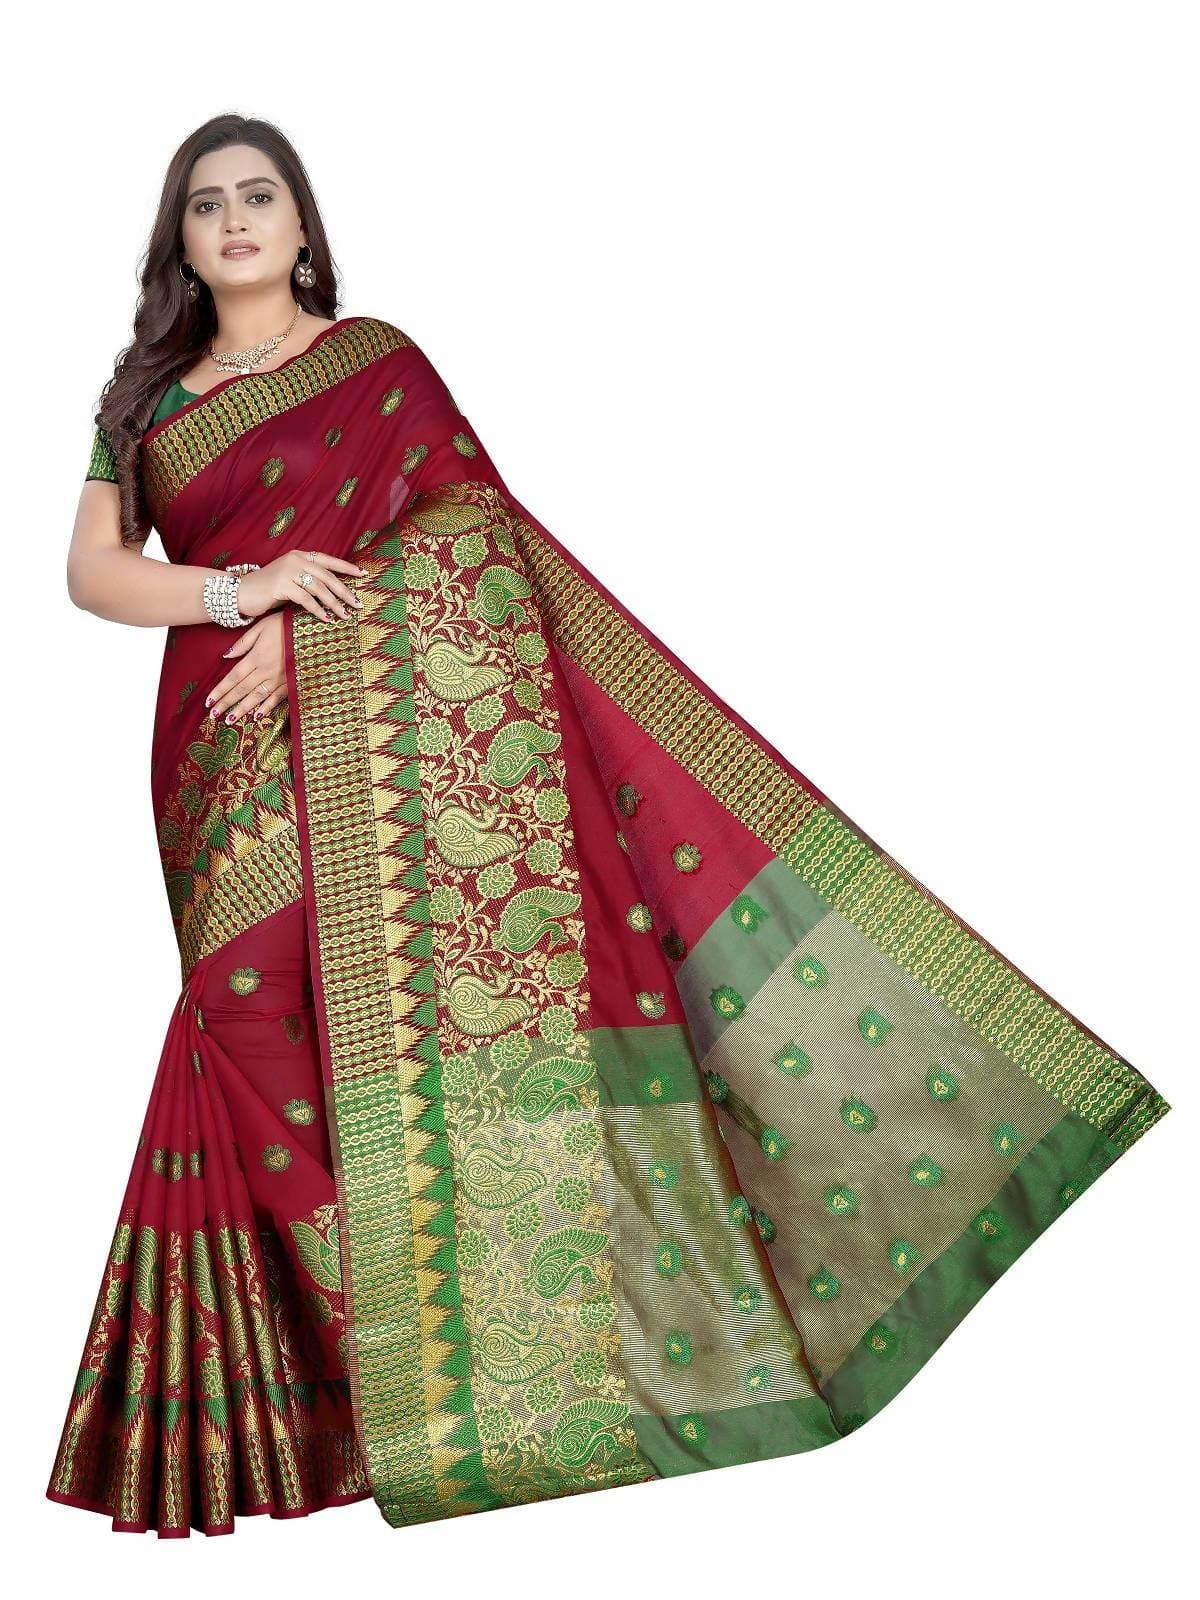 Vamika Banarasi Jaquard Red Weaving Saree With Green Blouse